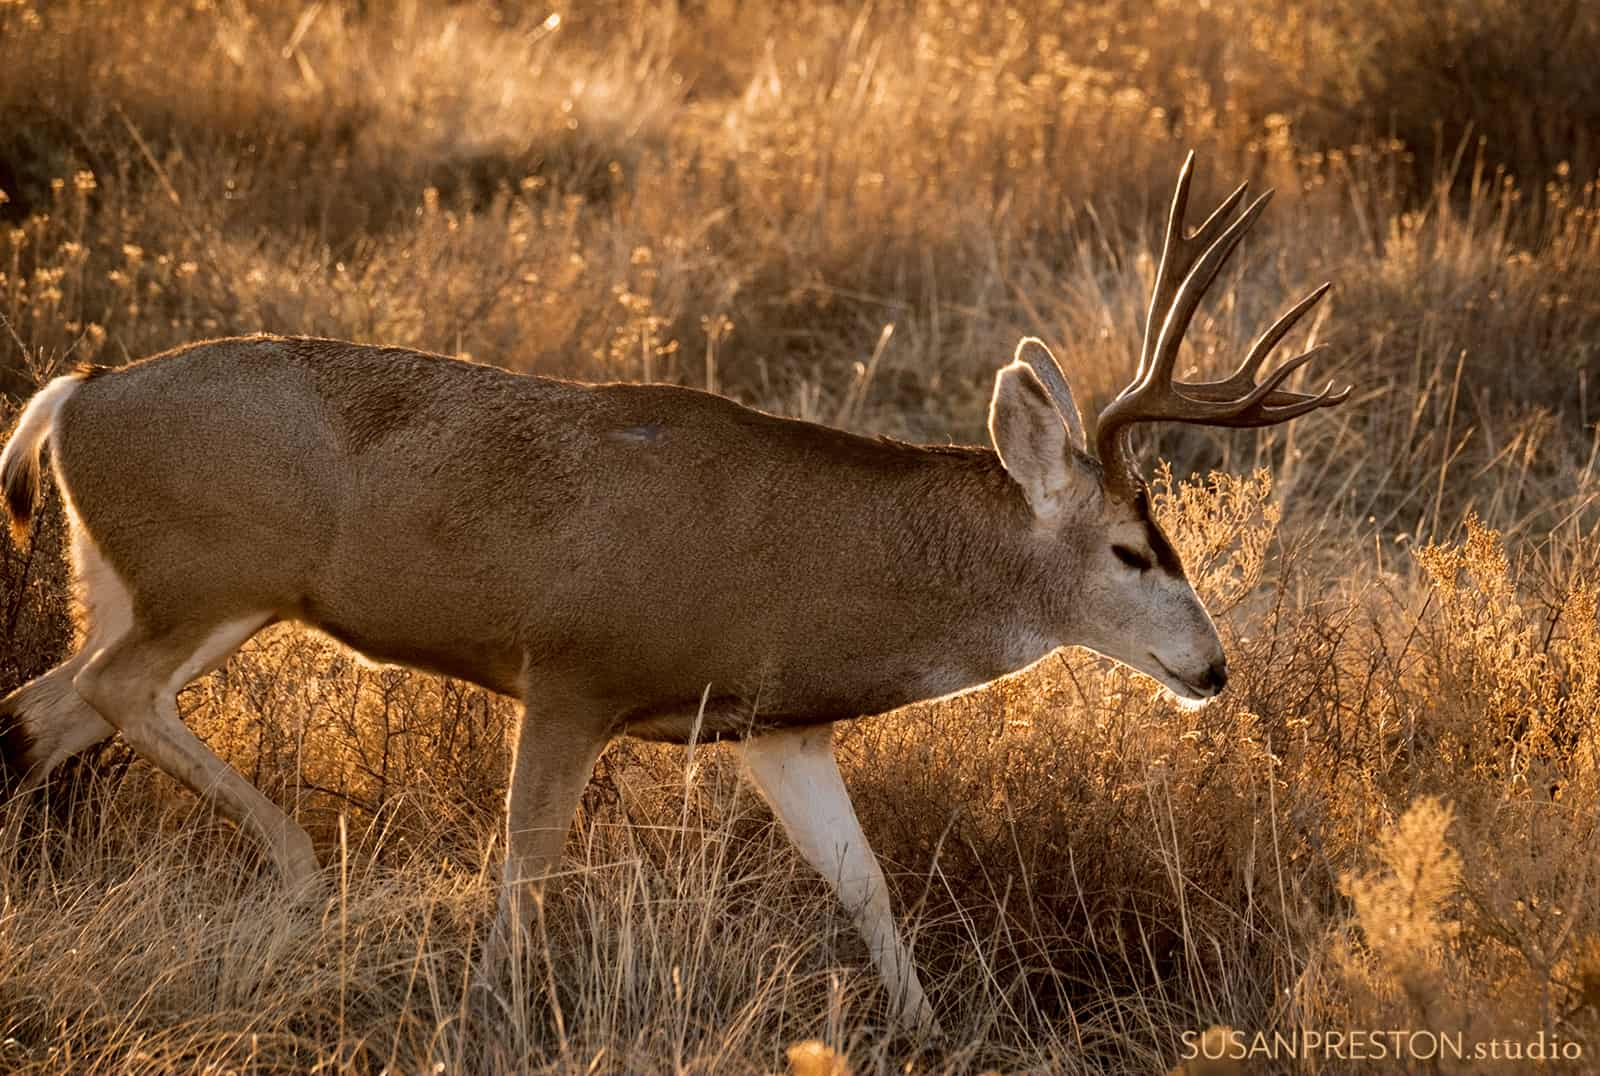 a mule deer buck traverses down a hill during the golden hour in the Bosque del Apache